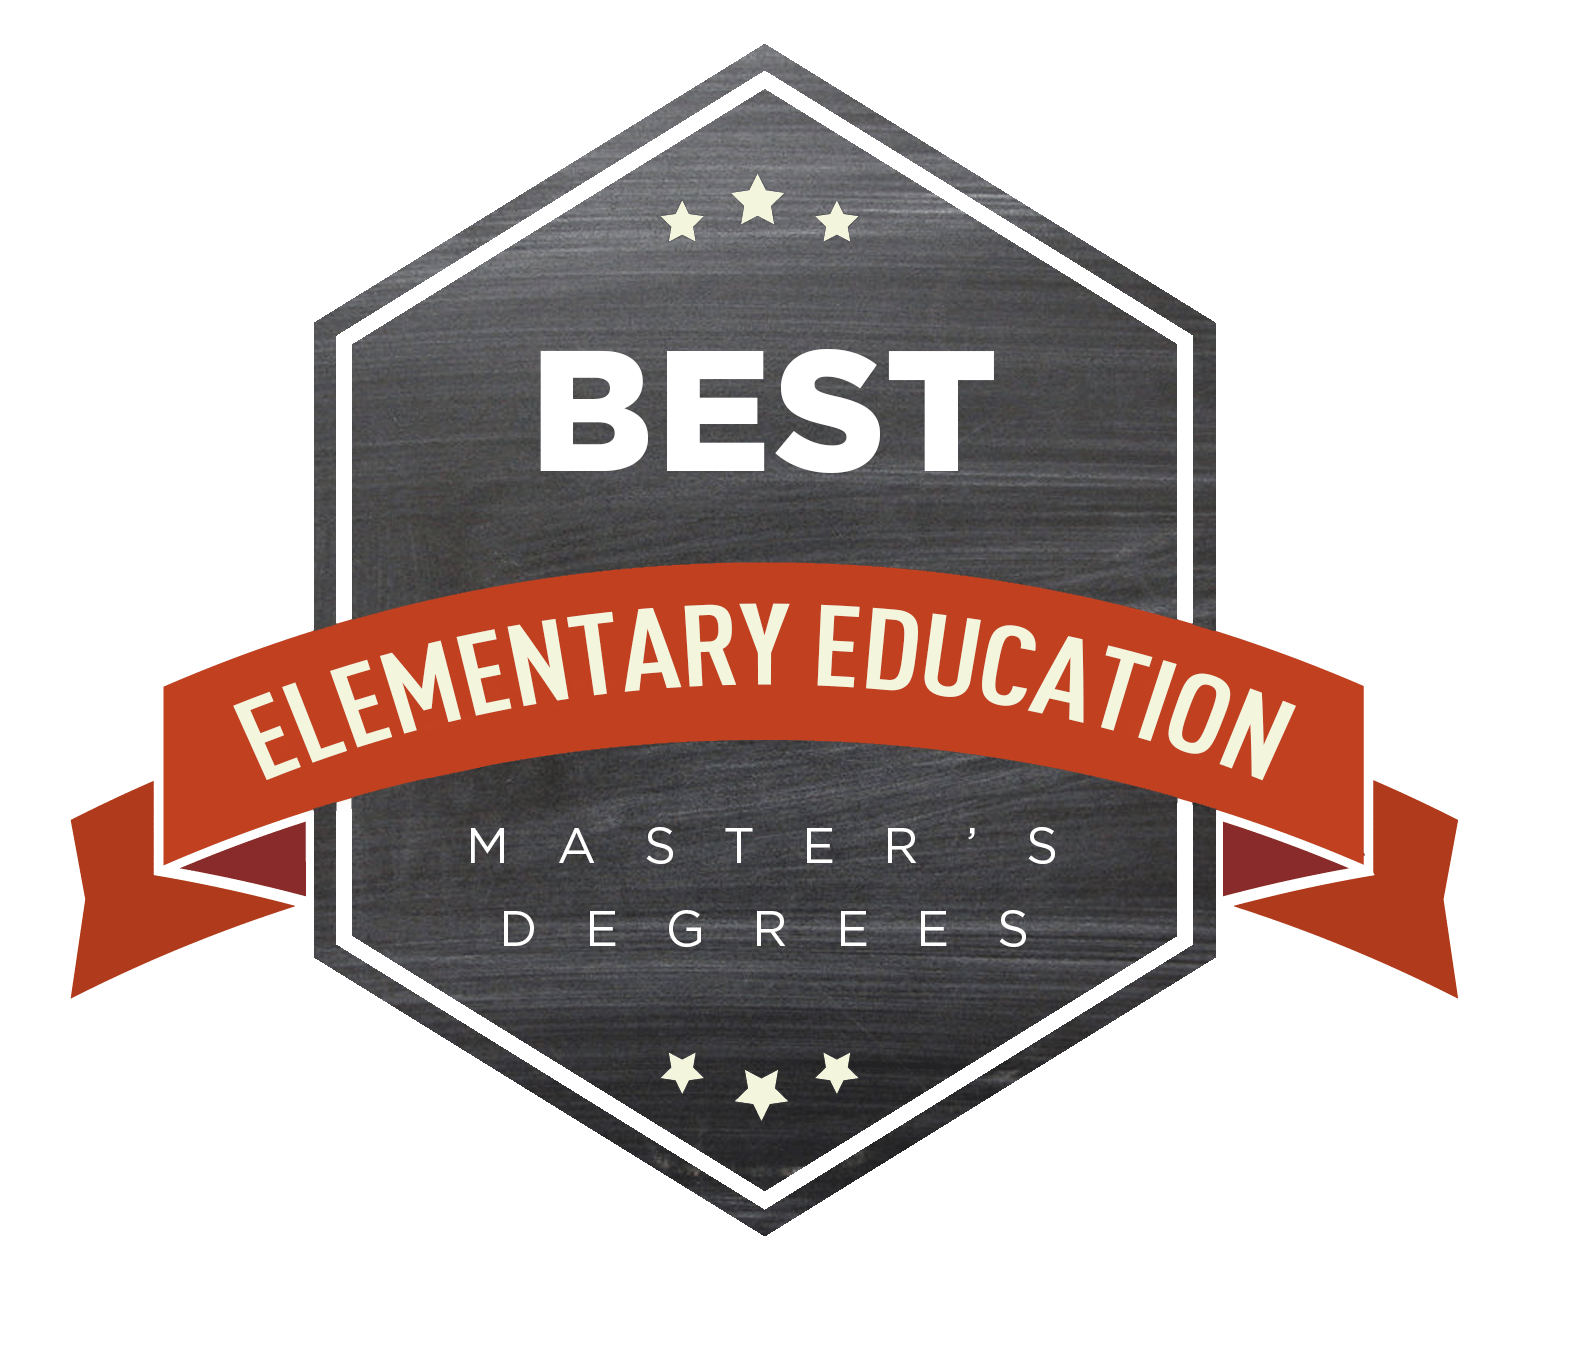 25 Best Master's in Elementary Education Degrees for 2018